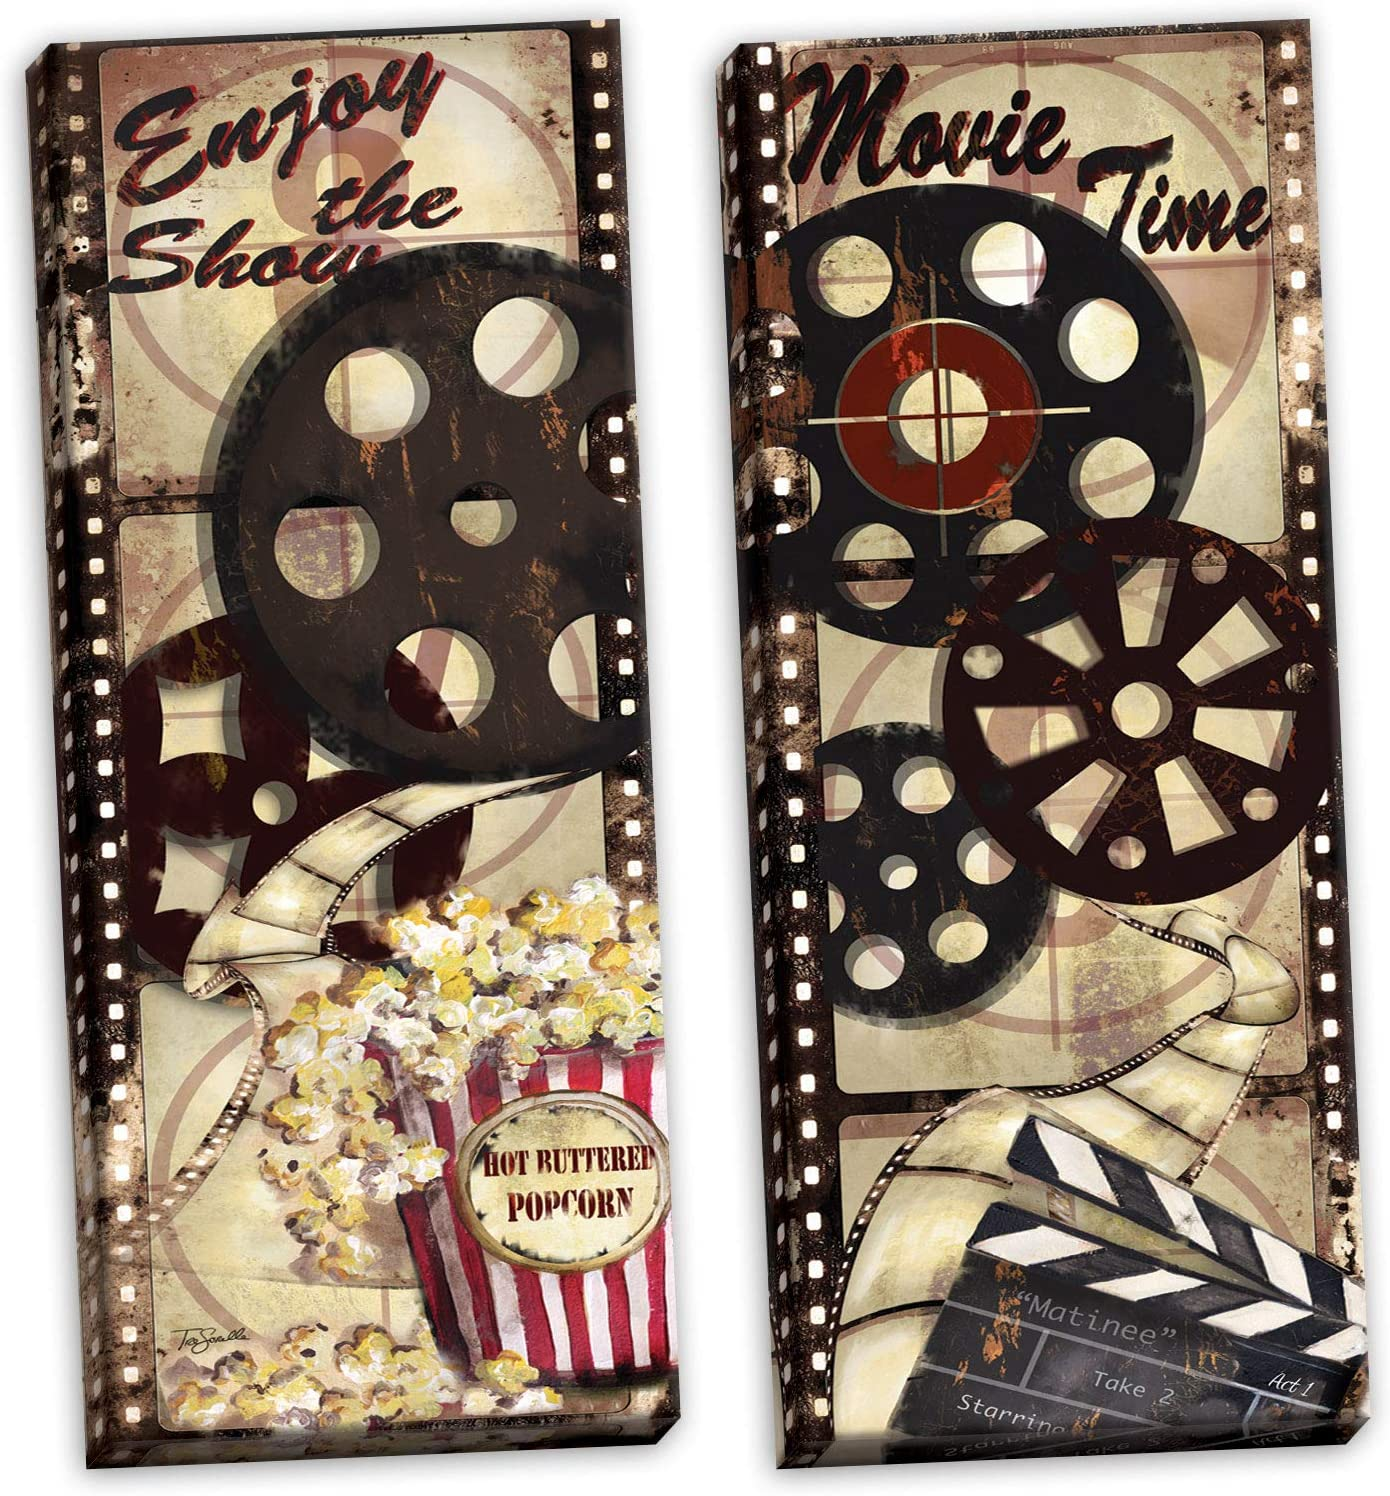 Gango Home Décor Movie Night! Classic Old-Fashioned Cinema Enjoy The Show and Movie Time Panel Set by TRE Sorelle Studios; Two 8x20in Stretched Canvases